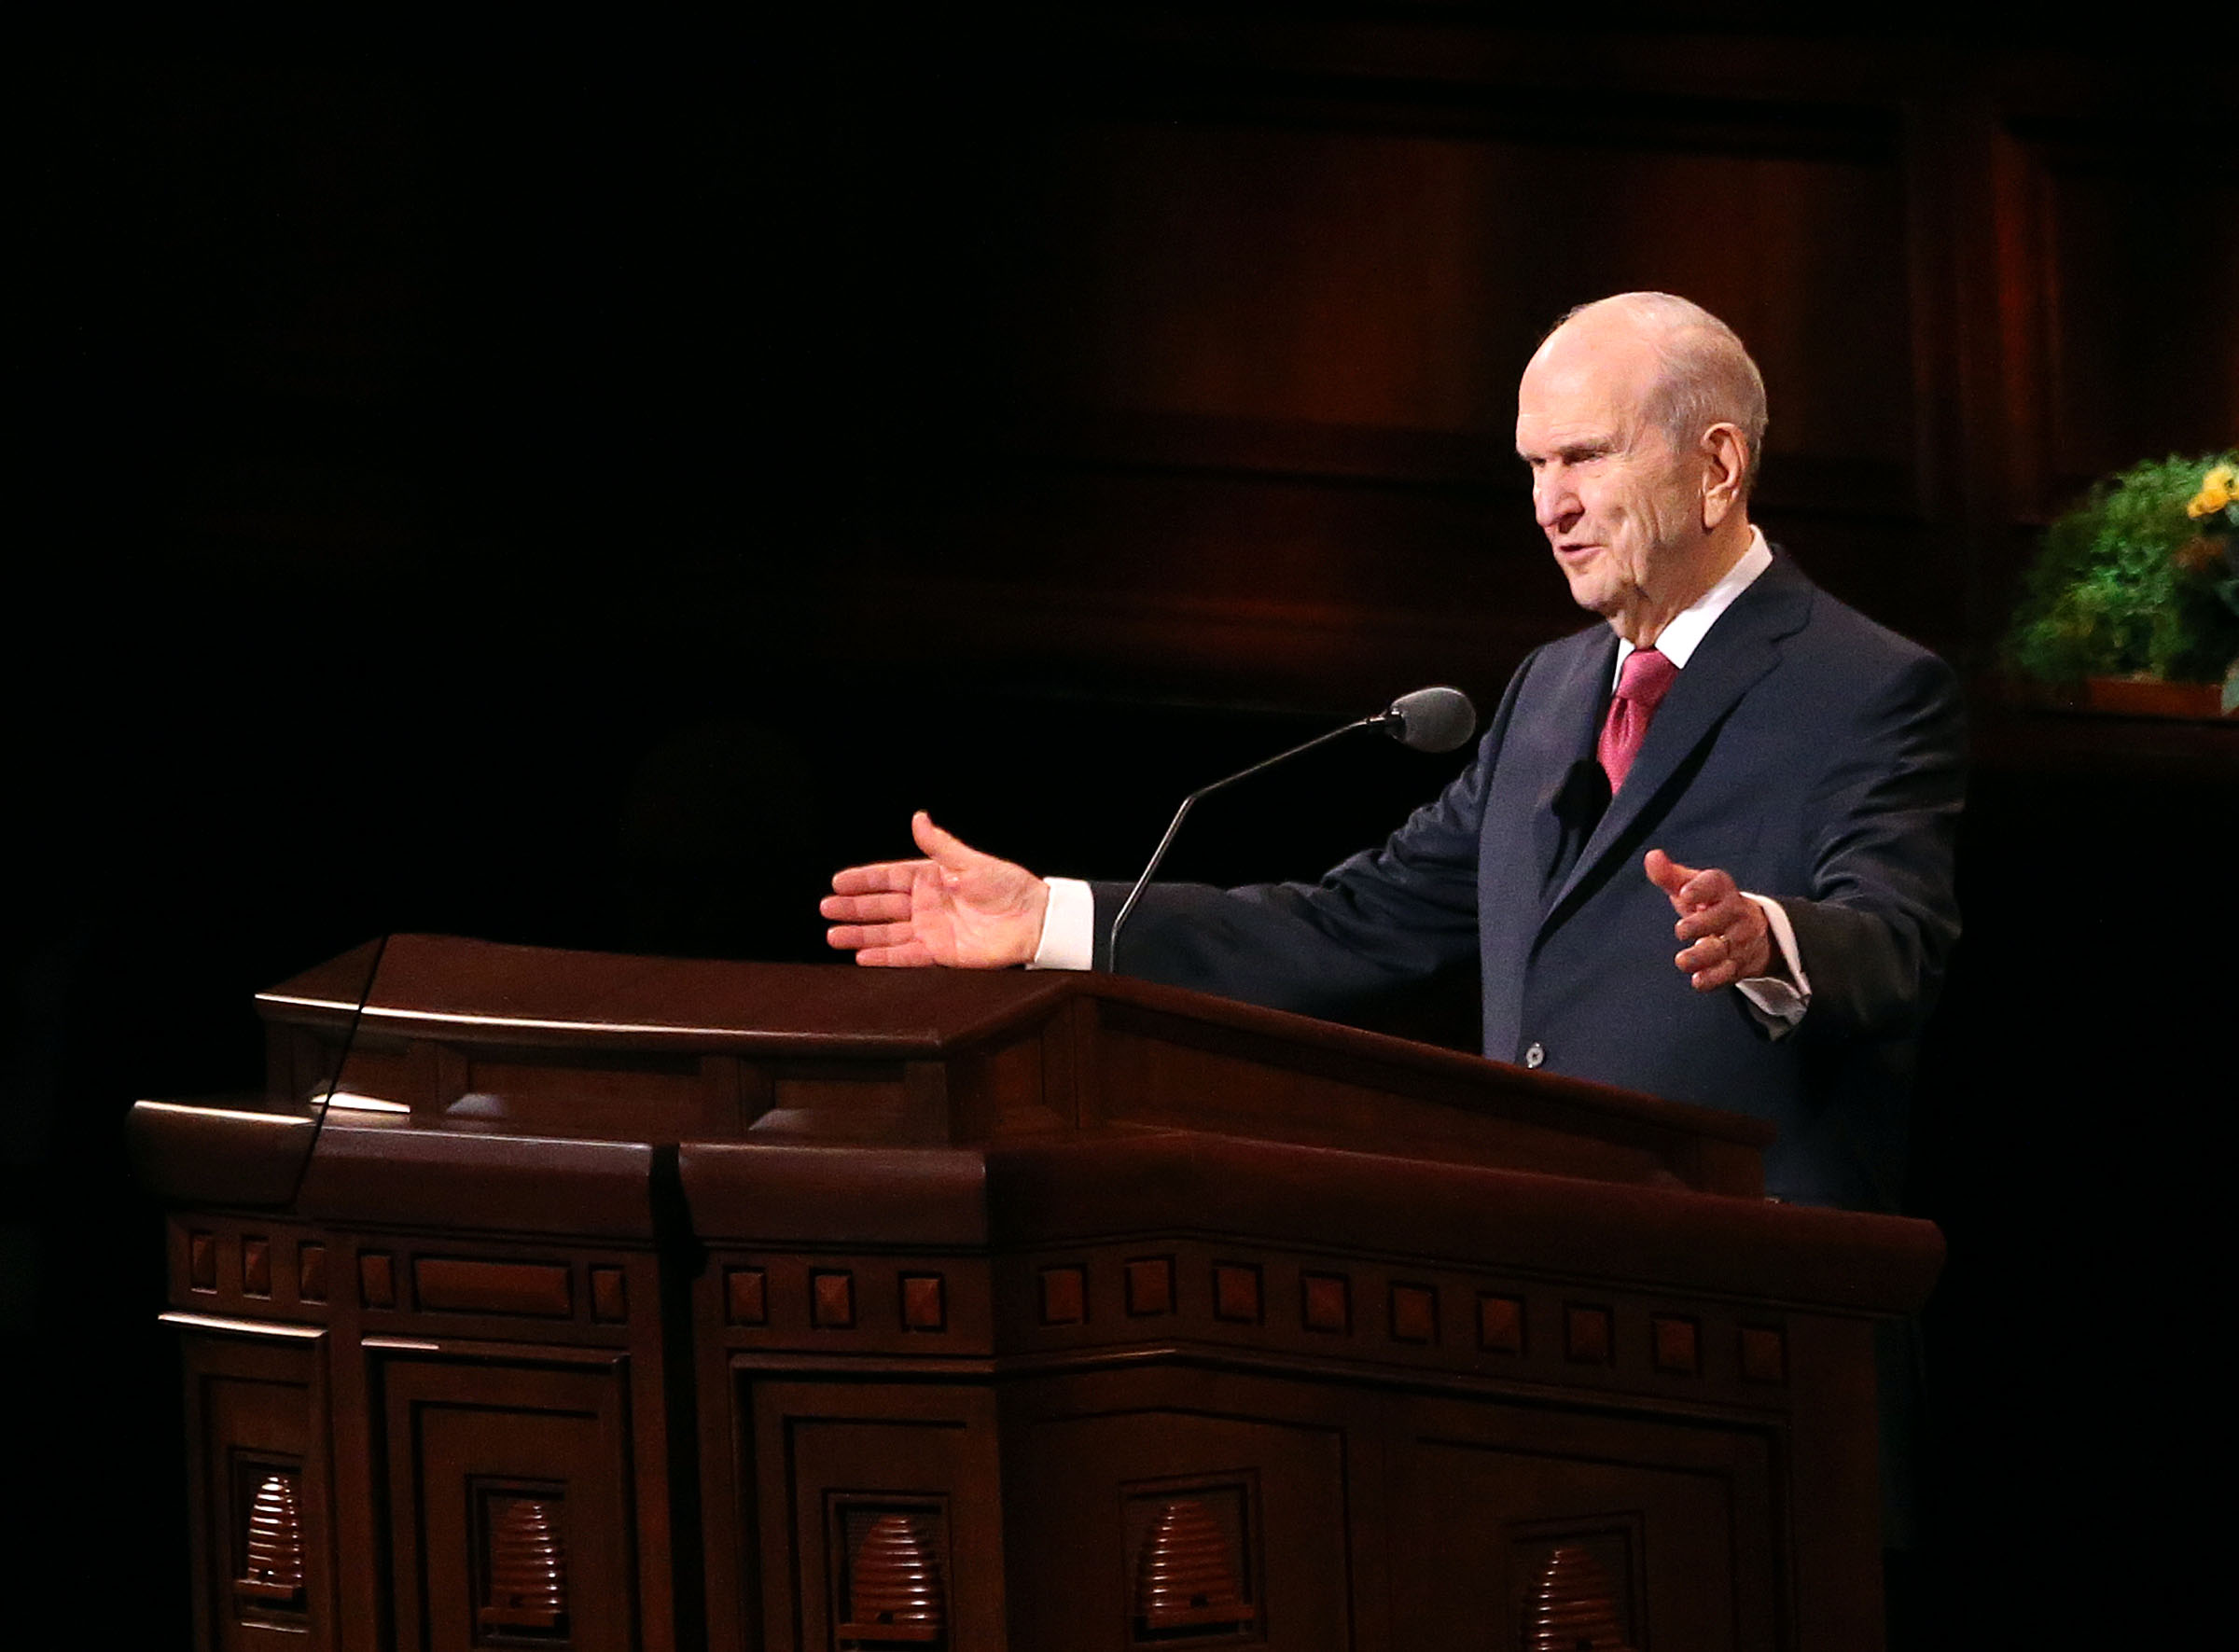 LDS Church President Russell M. Nelson speaks during the morning session of the 188th Annual General Conference of The Church of Jesus Christ of Latter-day Saints at the Conference Center in Salt Lake City on Sunday, April 1, 2018.